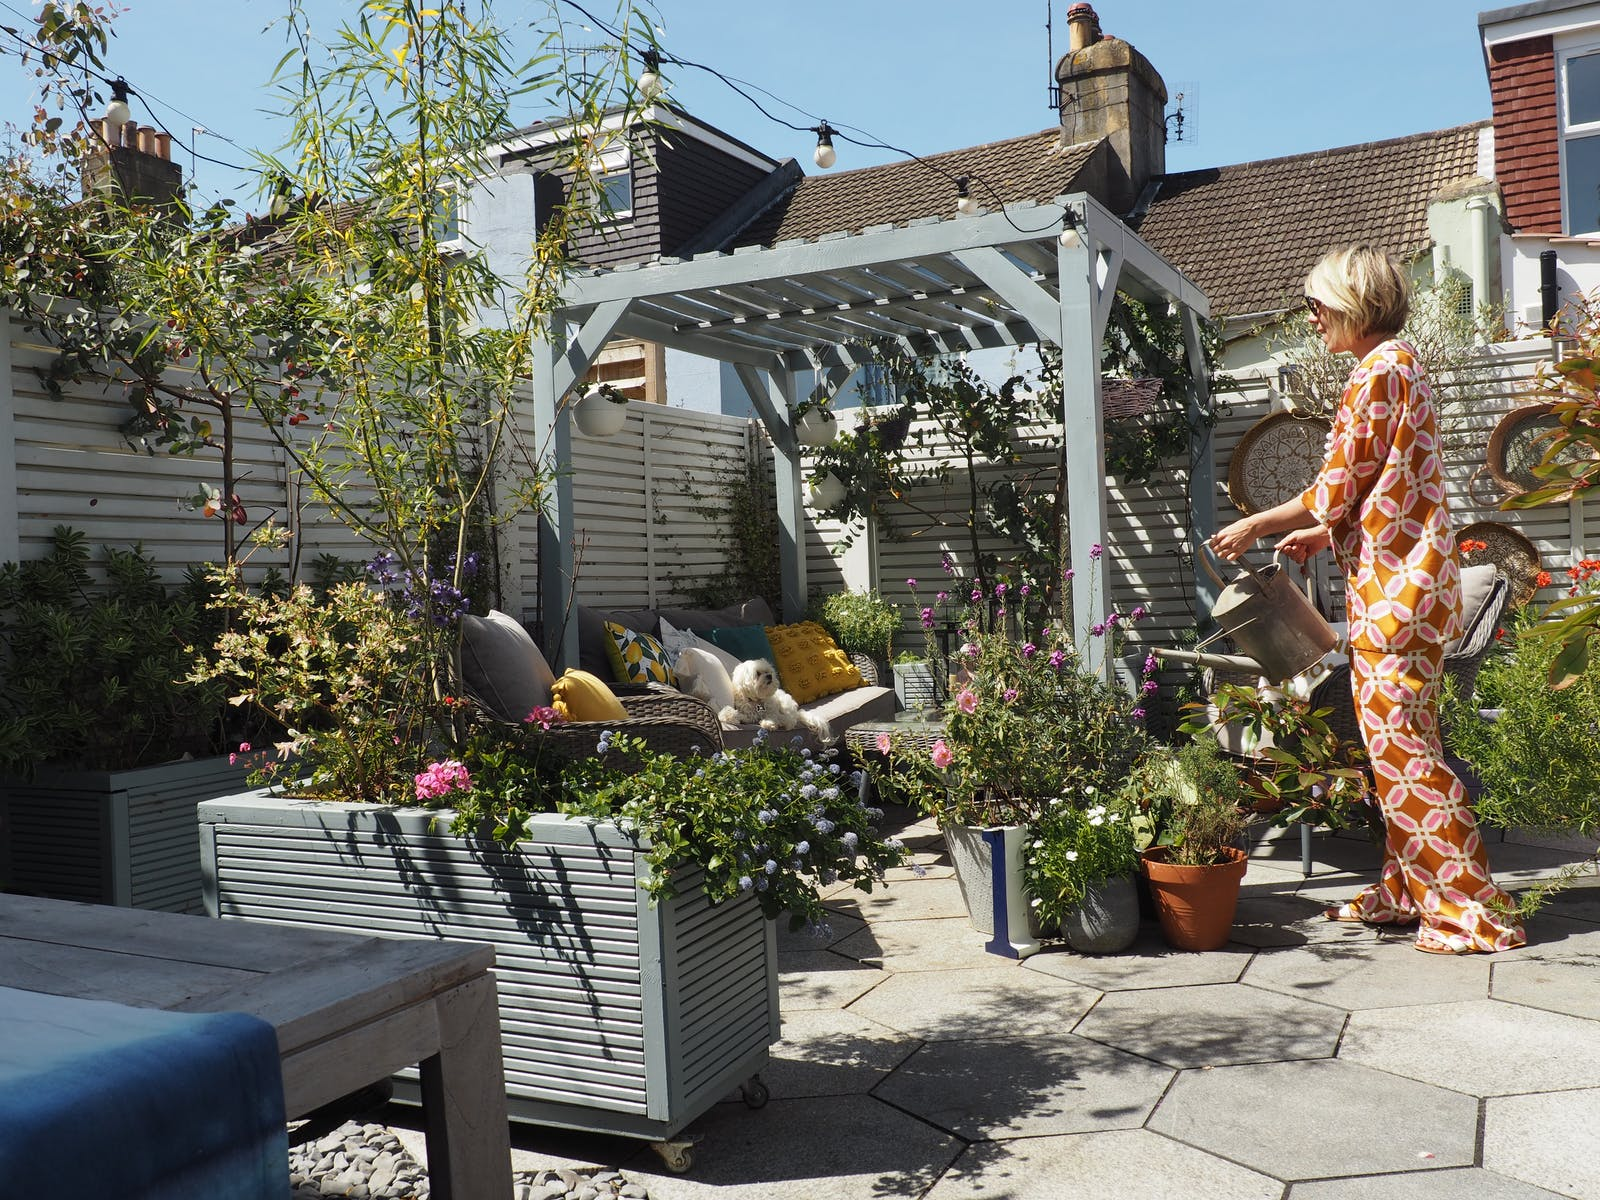 Blonde woman with pixie cut standing in garden watering a plant